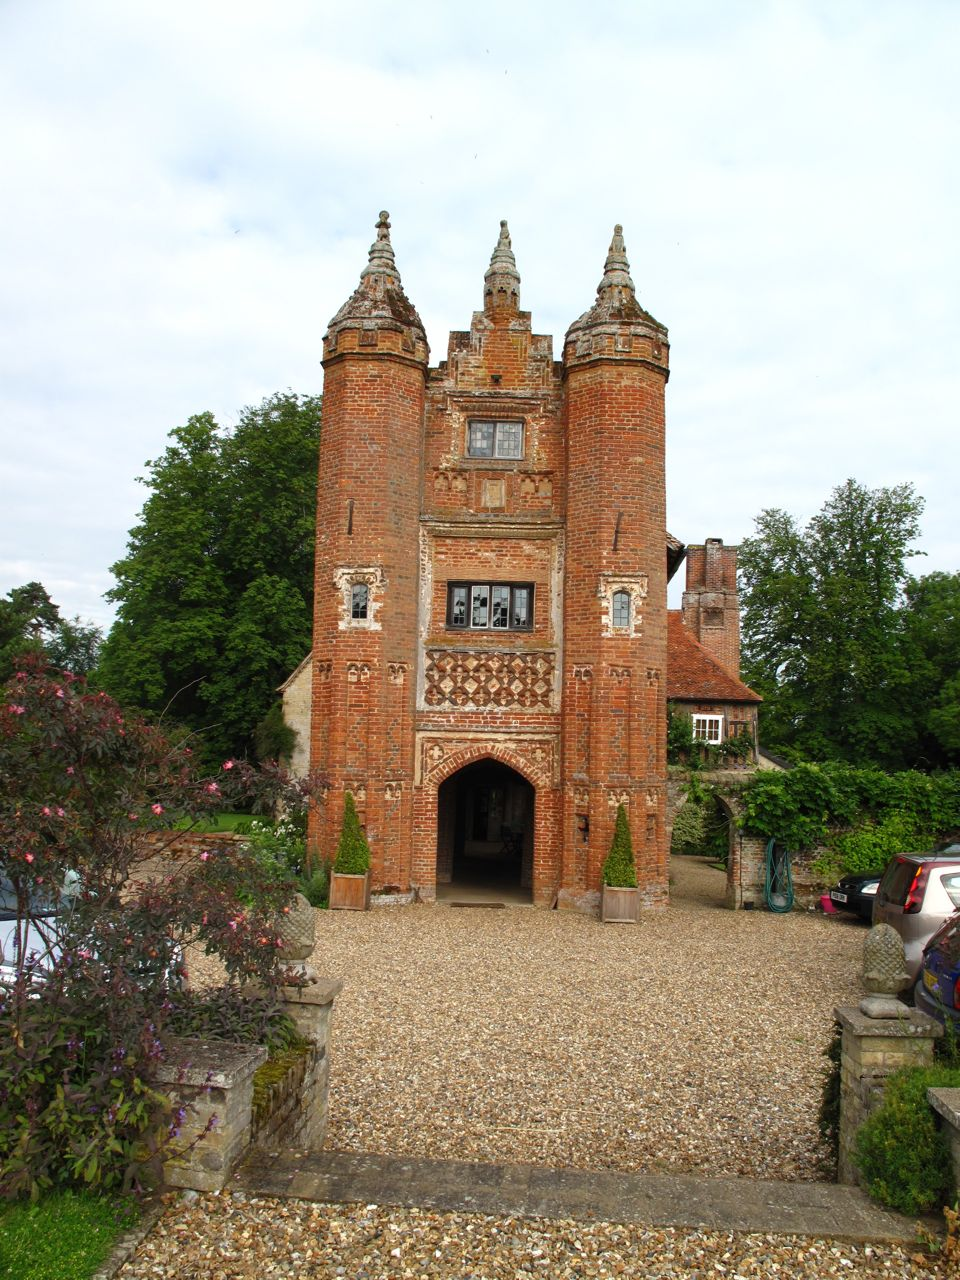 ROCK ROSE: WEST STOW HALL, A B&B WITH A DIFFERENCE